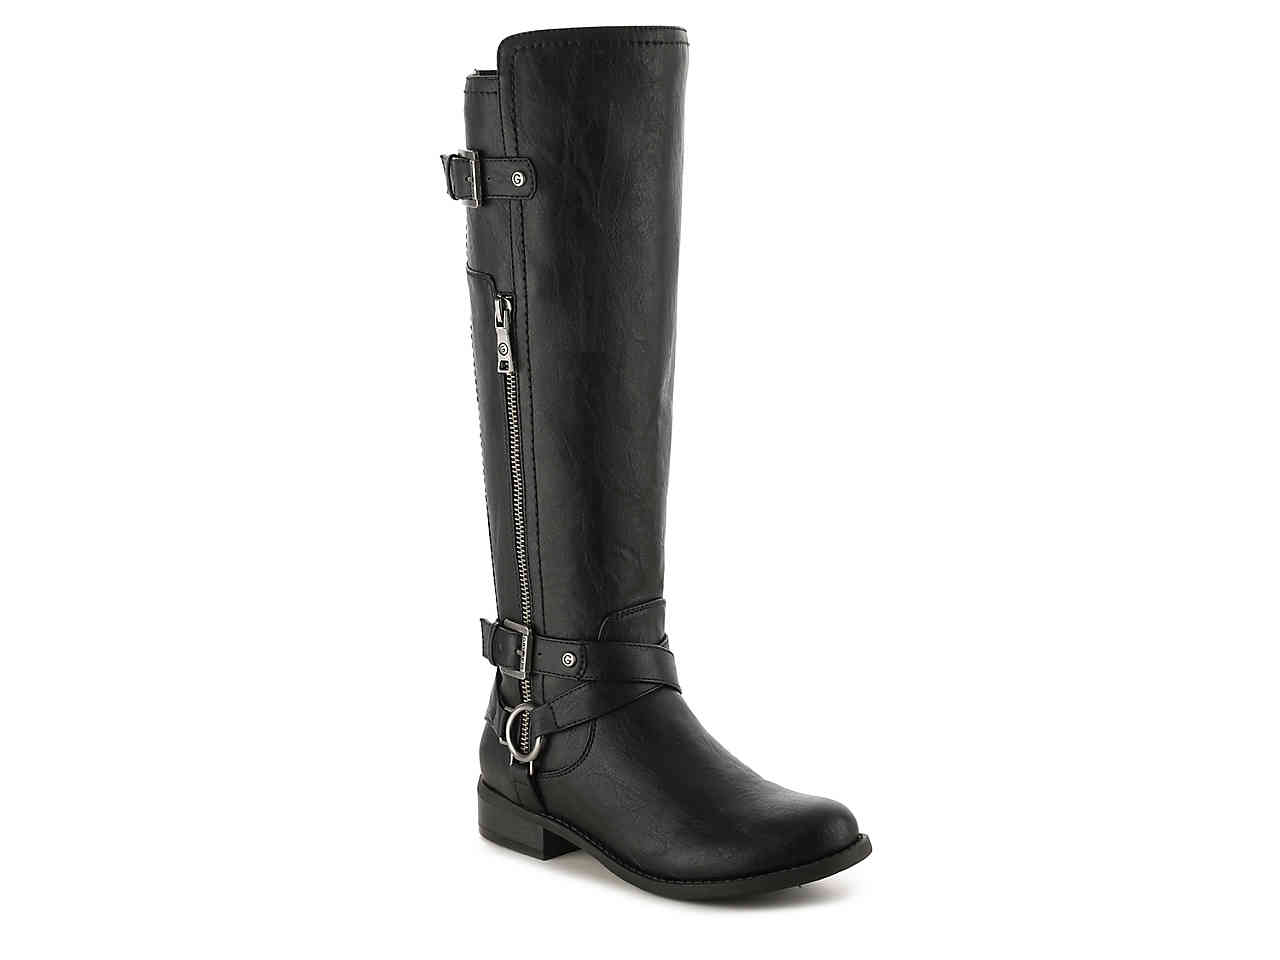 Riding boots herly riding boot EEFAIGL